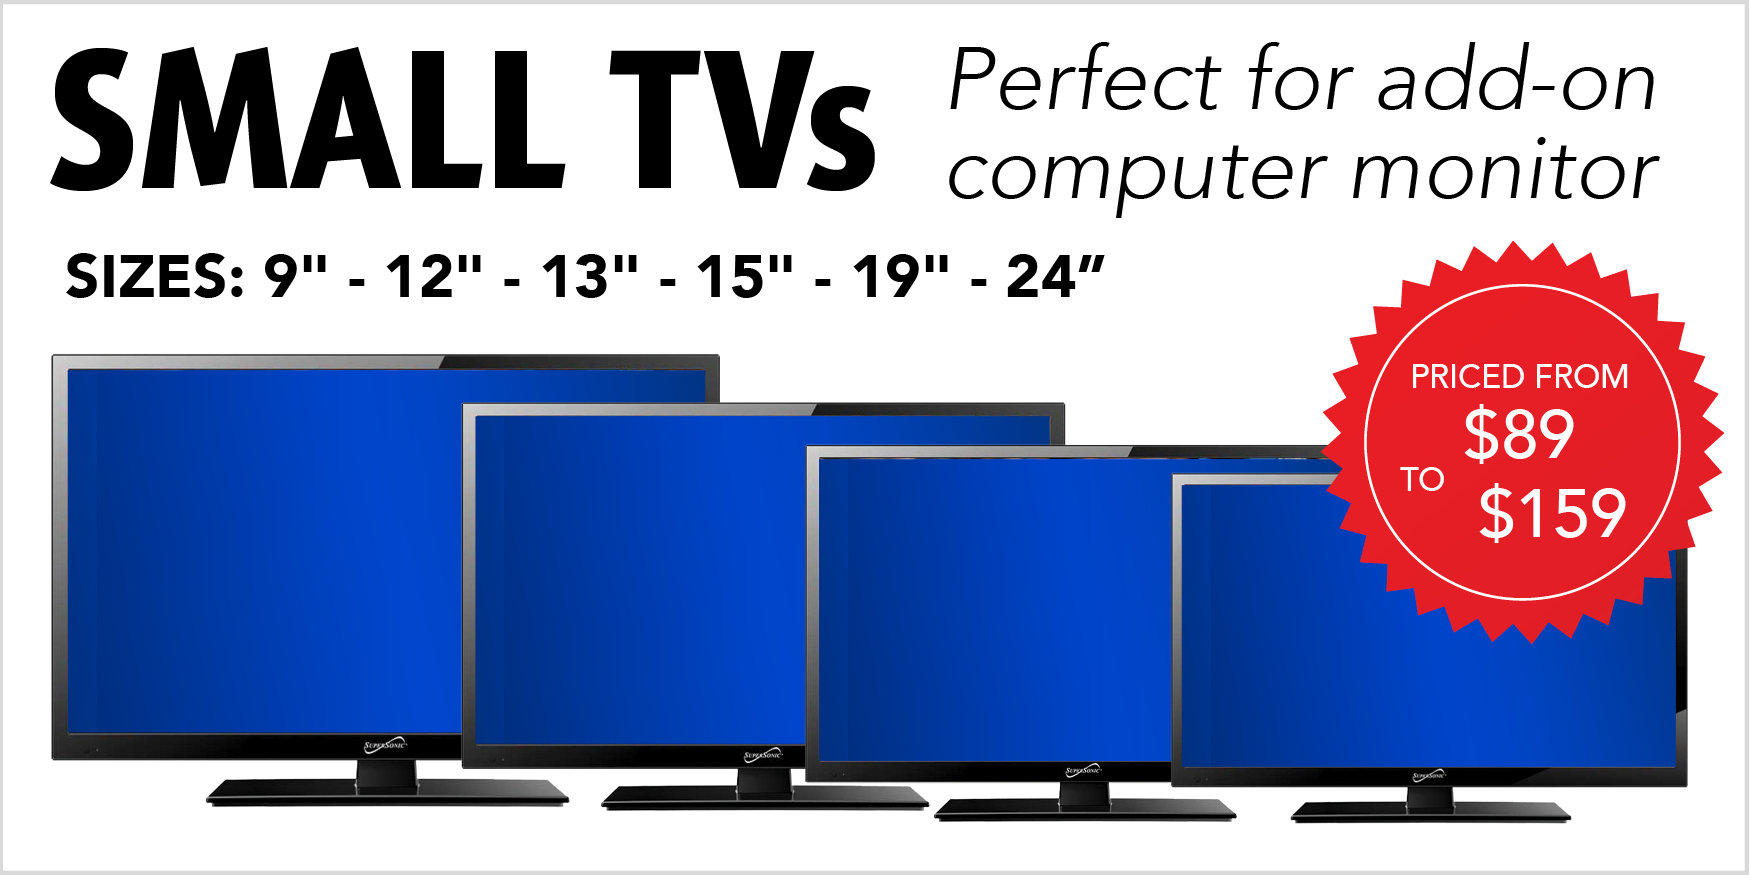 Small TVs for Monitors